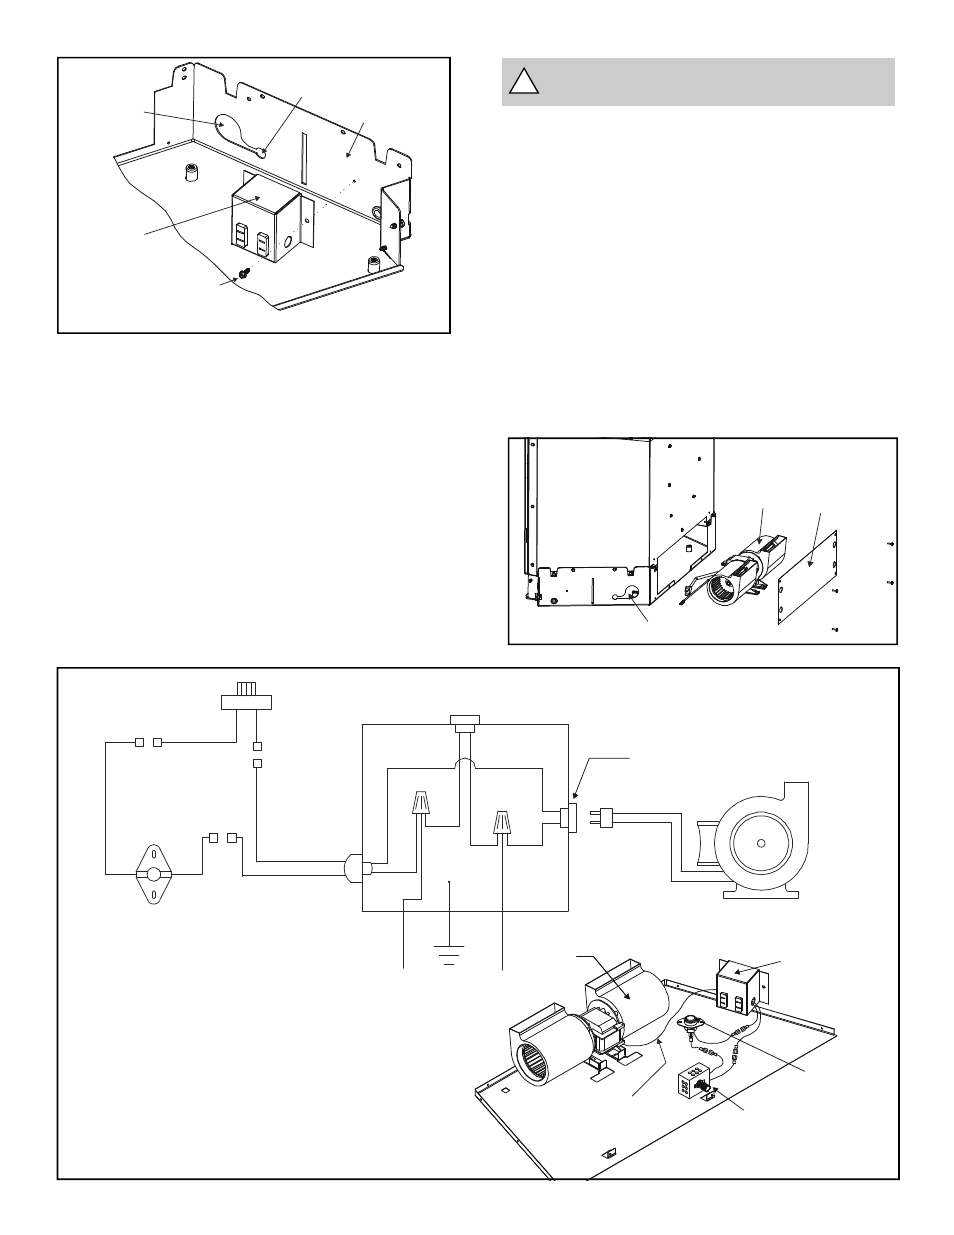 Figure 10  Fan Wiring Diagram  Warning  Must Use The Cord